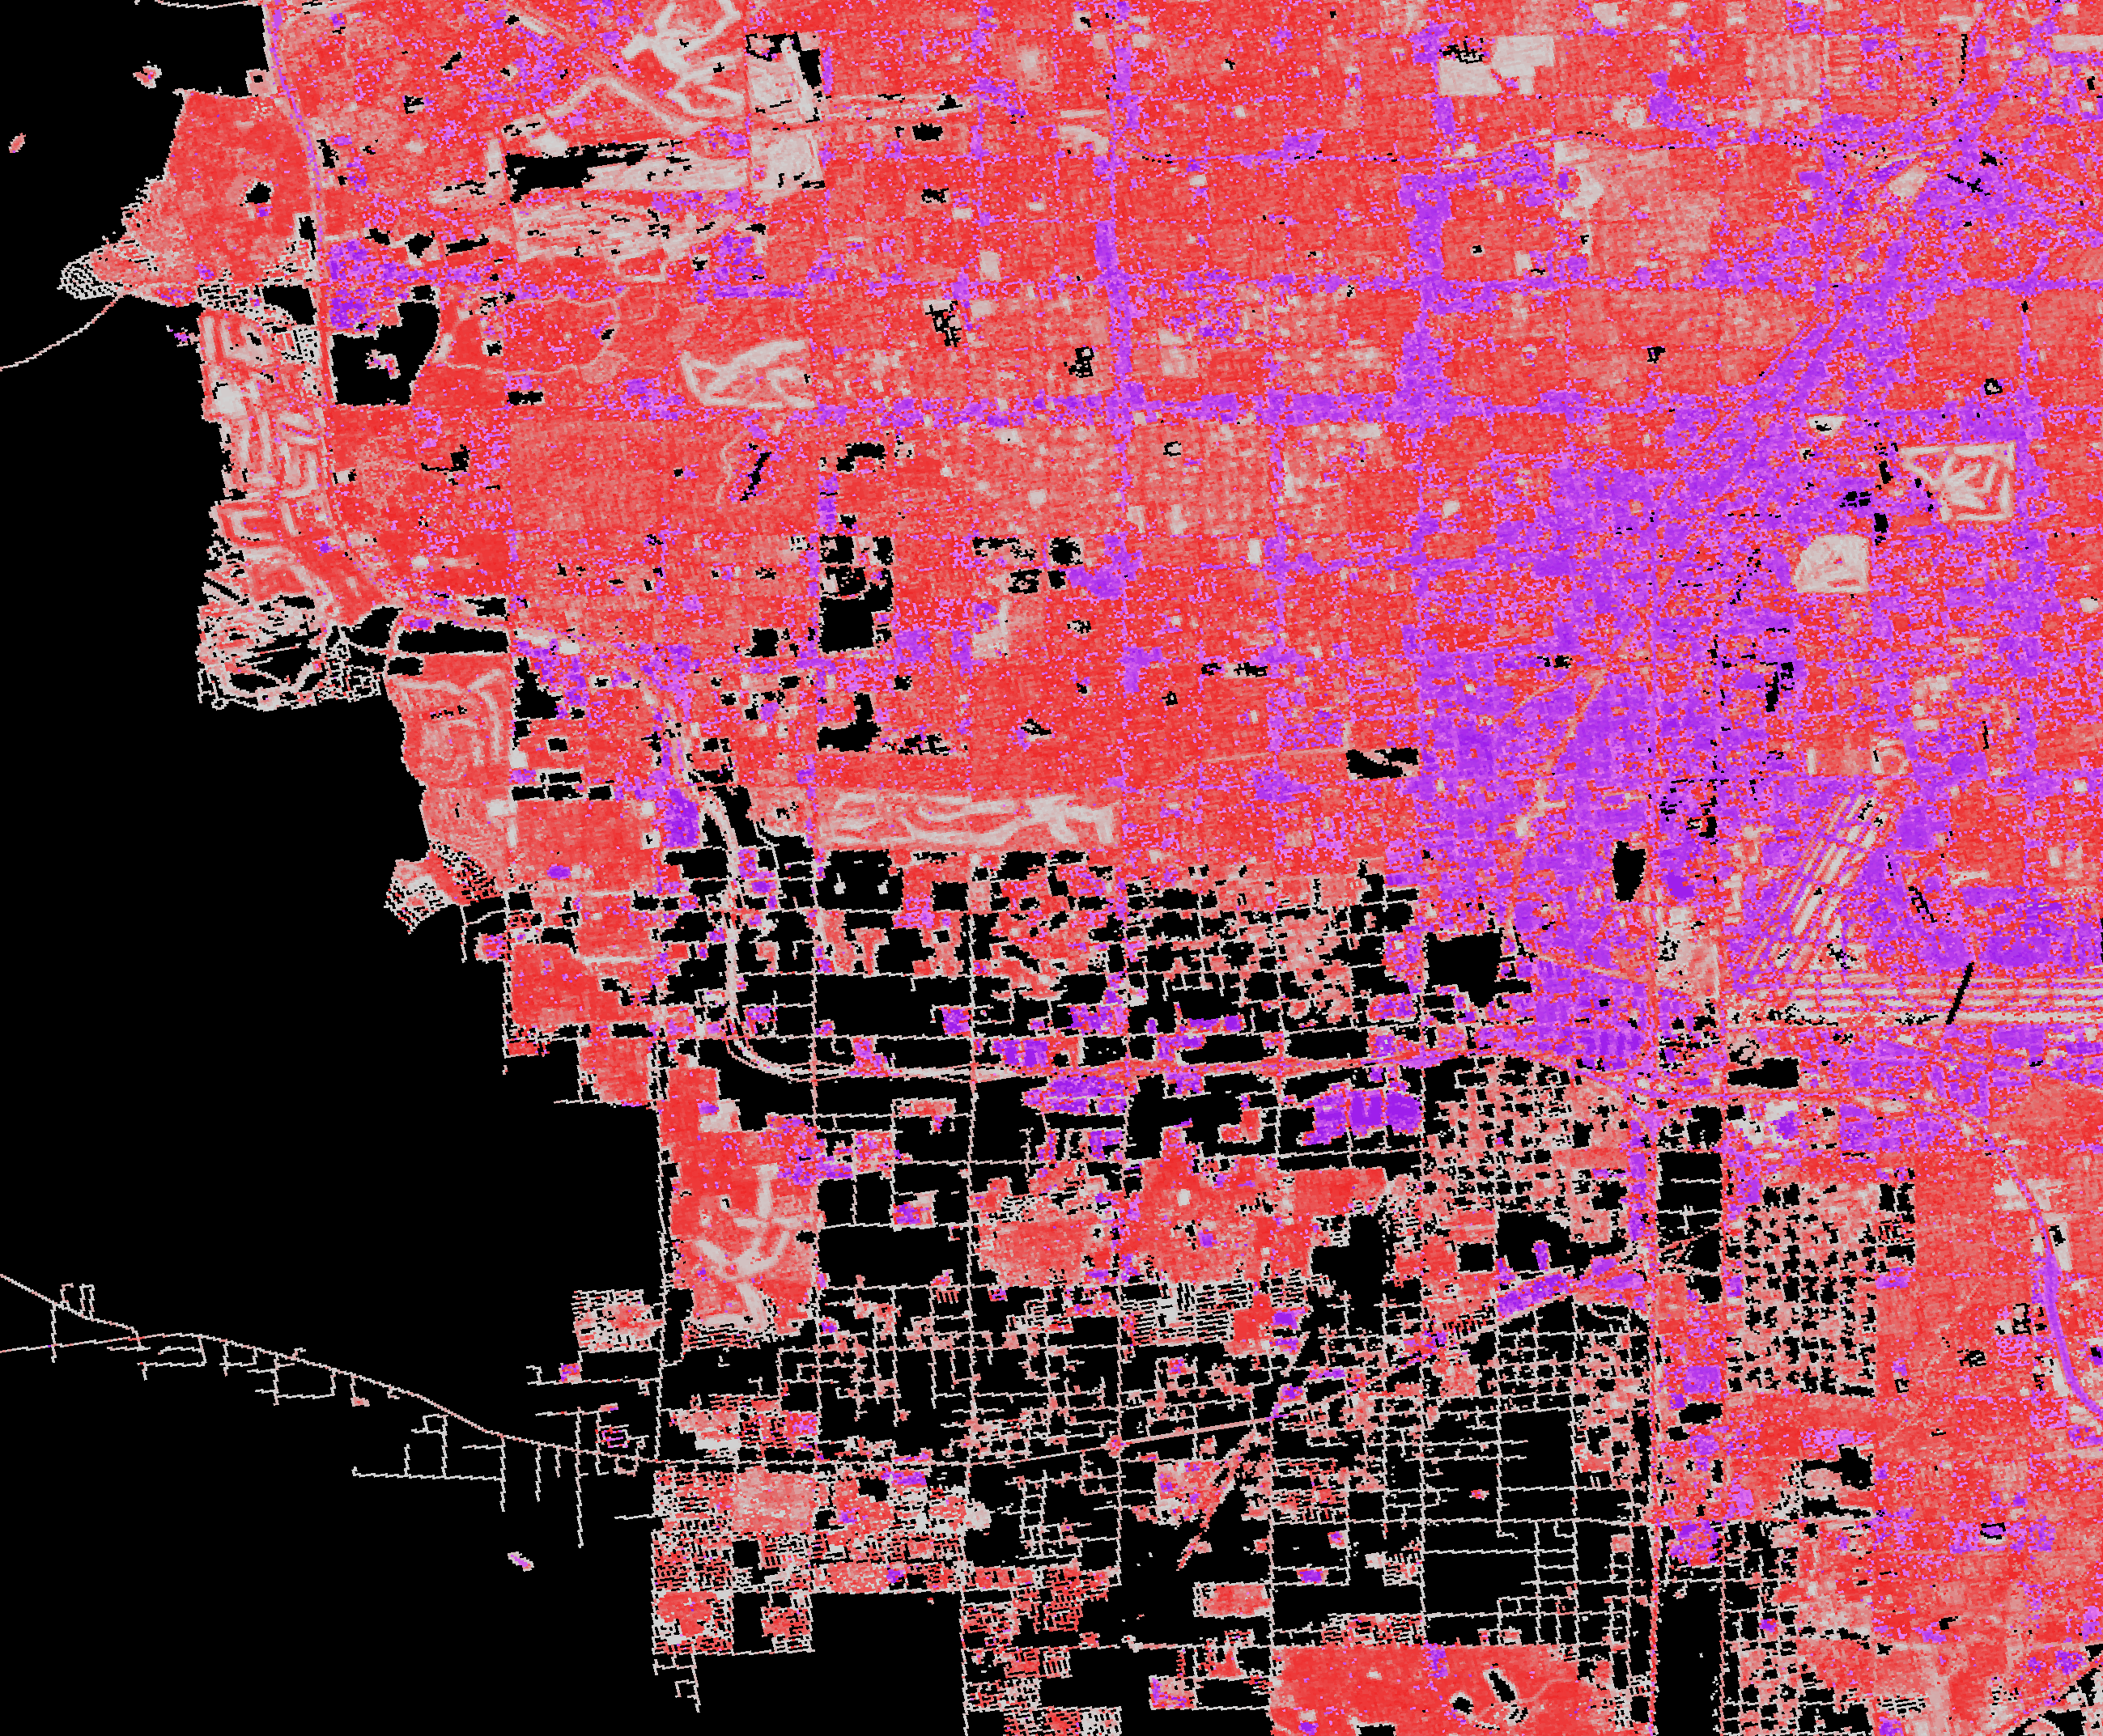 National Land Cover Database (NLCD) 2011, Impervious Surface, Las Vegas, Nevada,